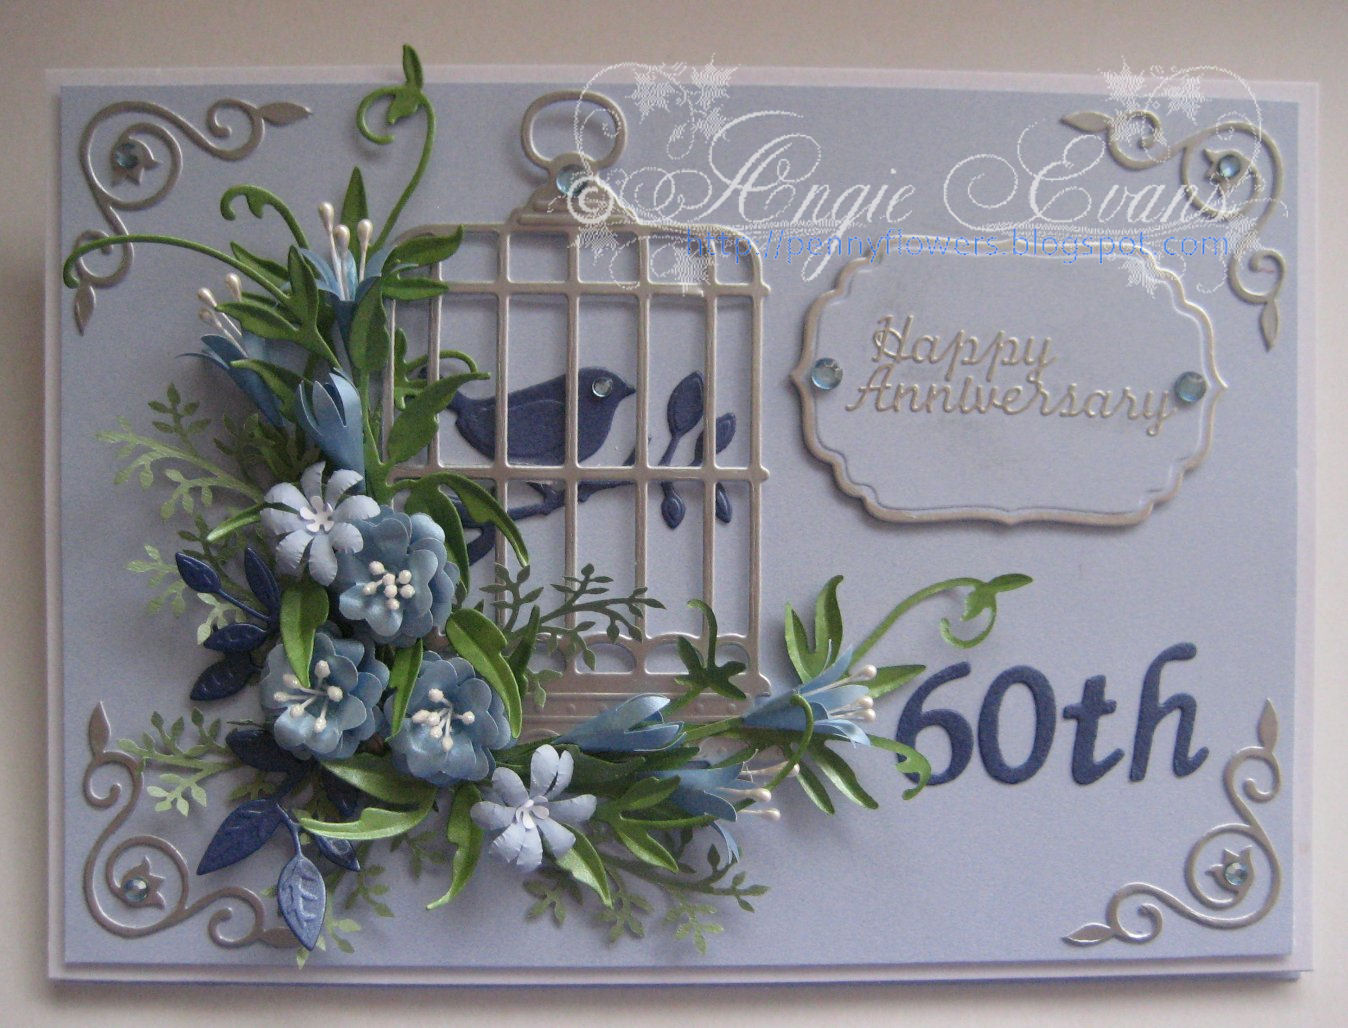 PENNY FLOWERS 60th Wedding Anniversary card